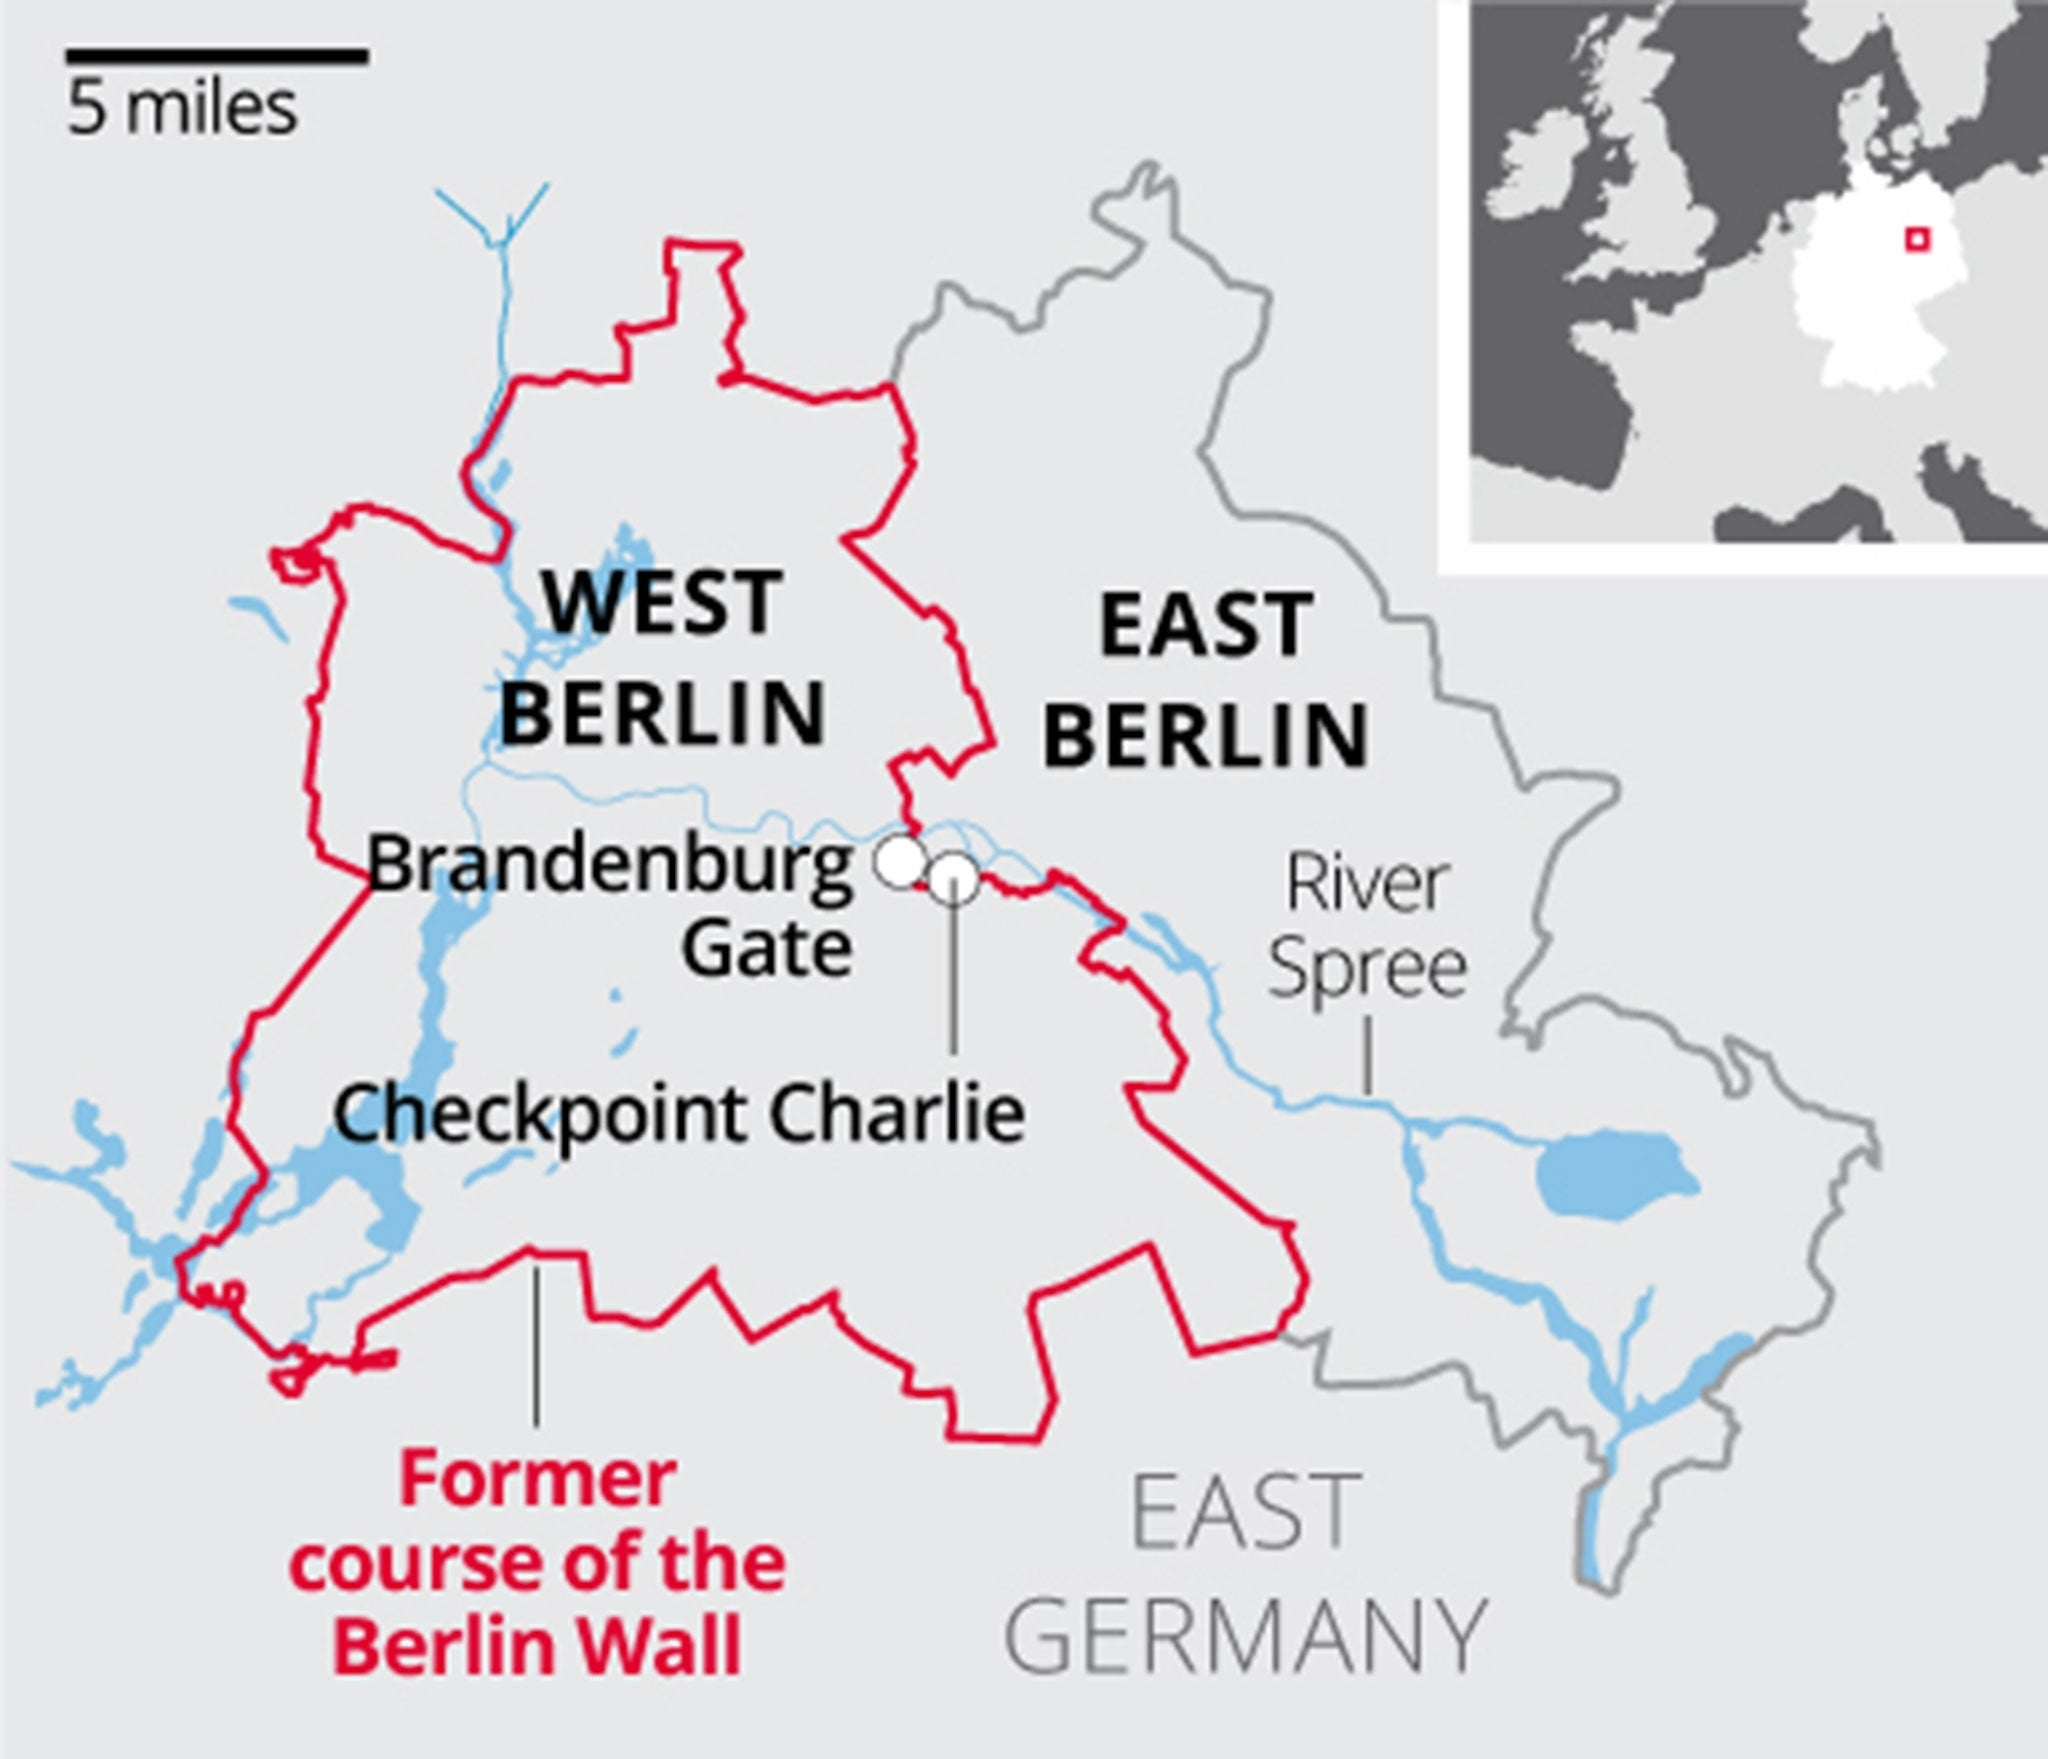 Berlin Wall: What You Need To Know About The Barrier That Divided in East And West Germany Border Map